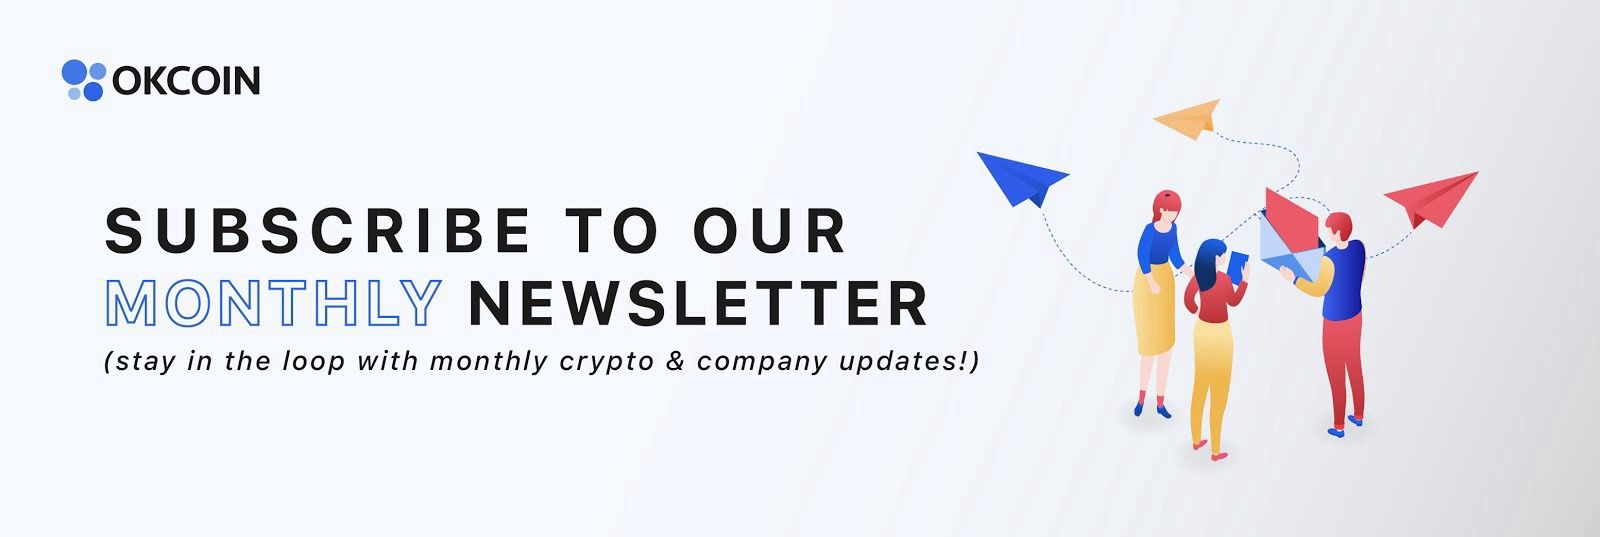 Sign-up for OKCoin newsletter